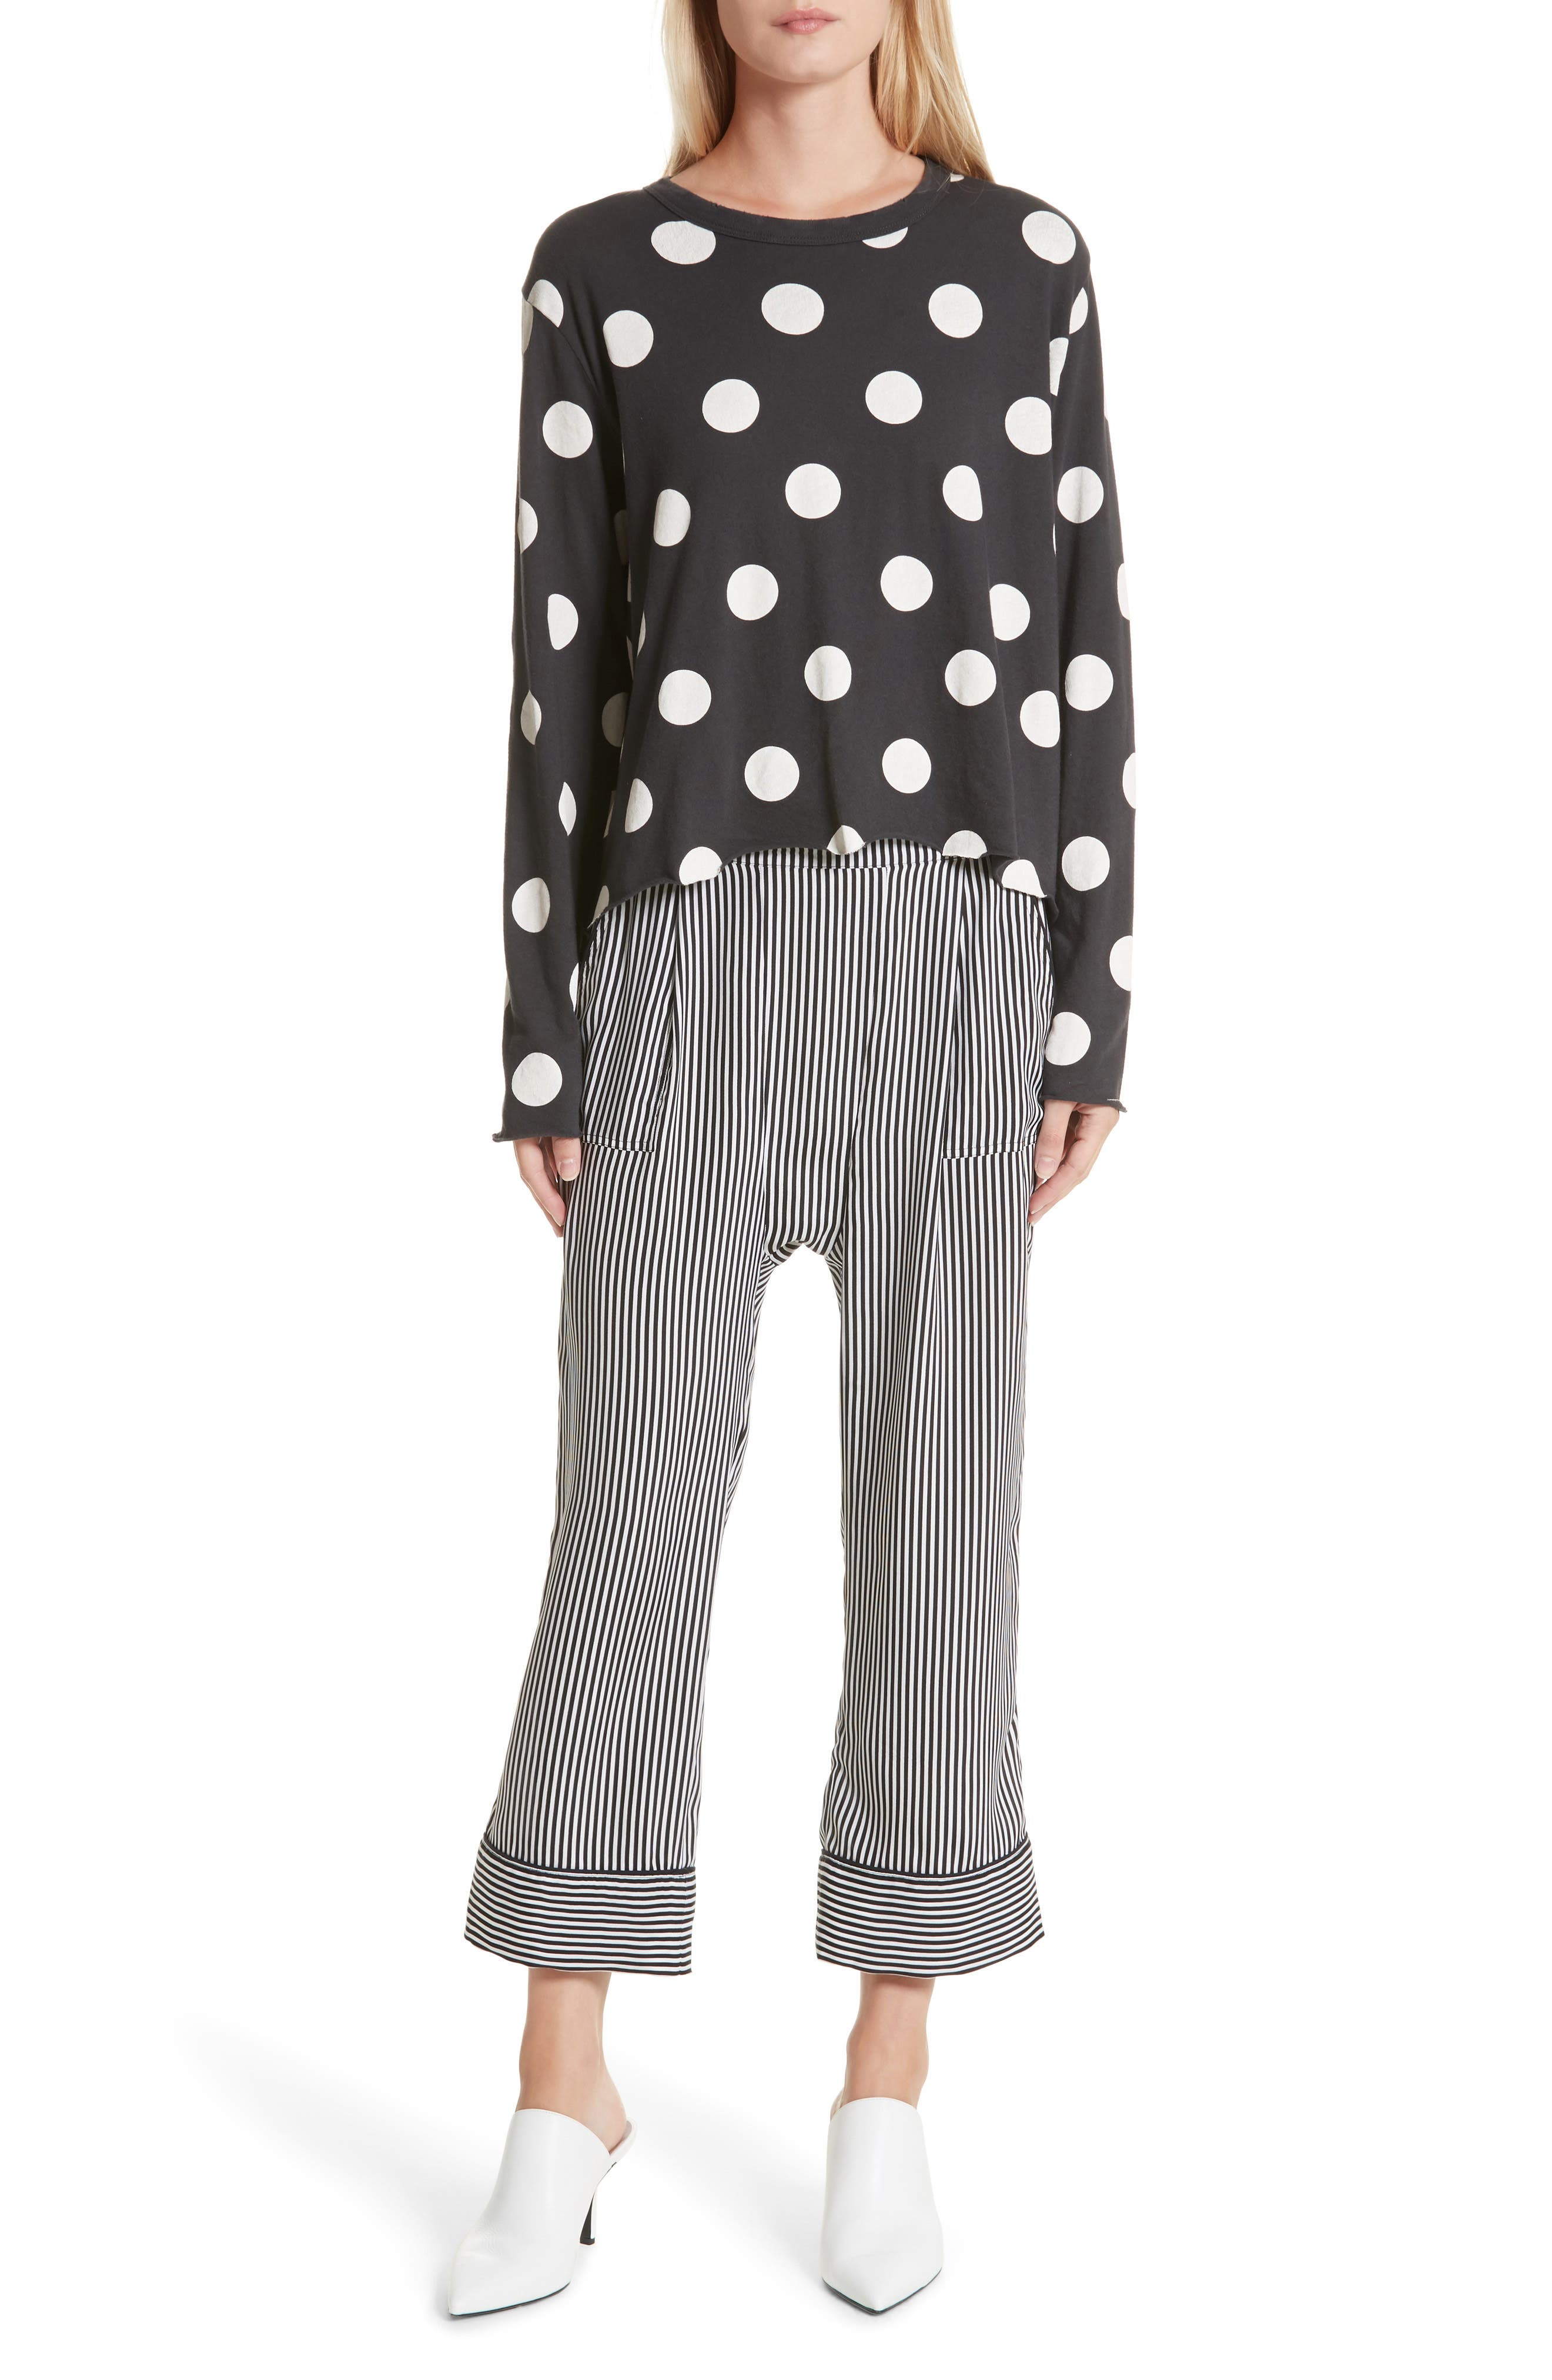 The Long Sleeve Crop Dot Print Tee,                             Alternate thumbnail 2, color,                             Washed Black White Dots